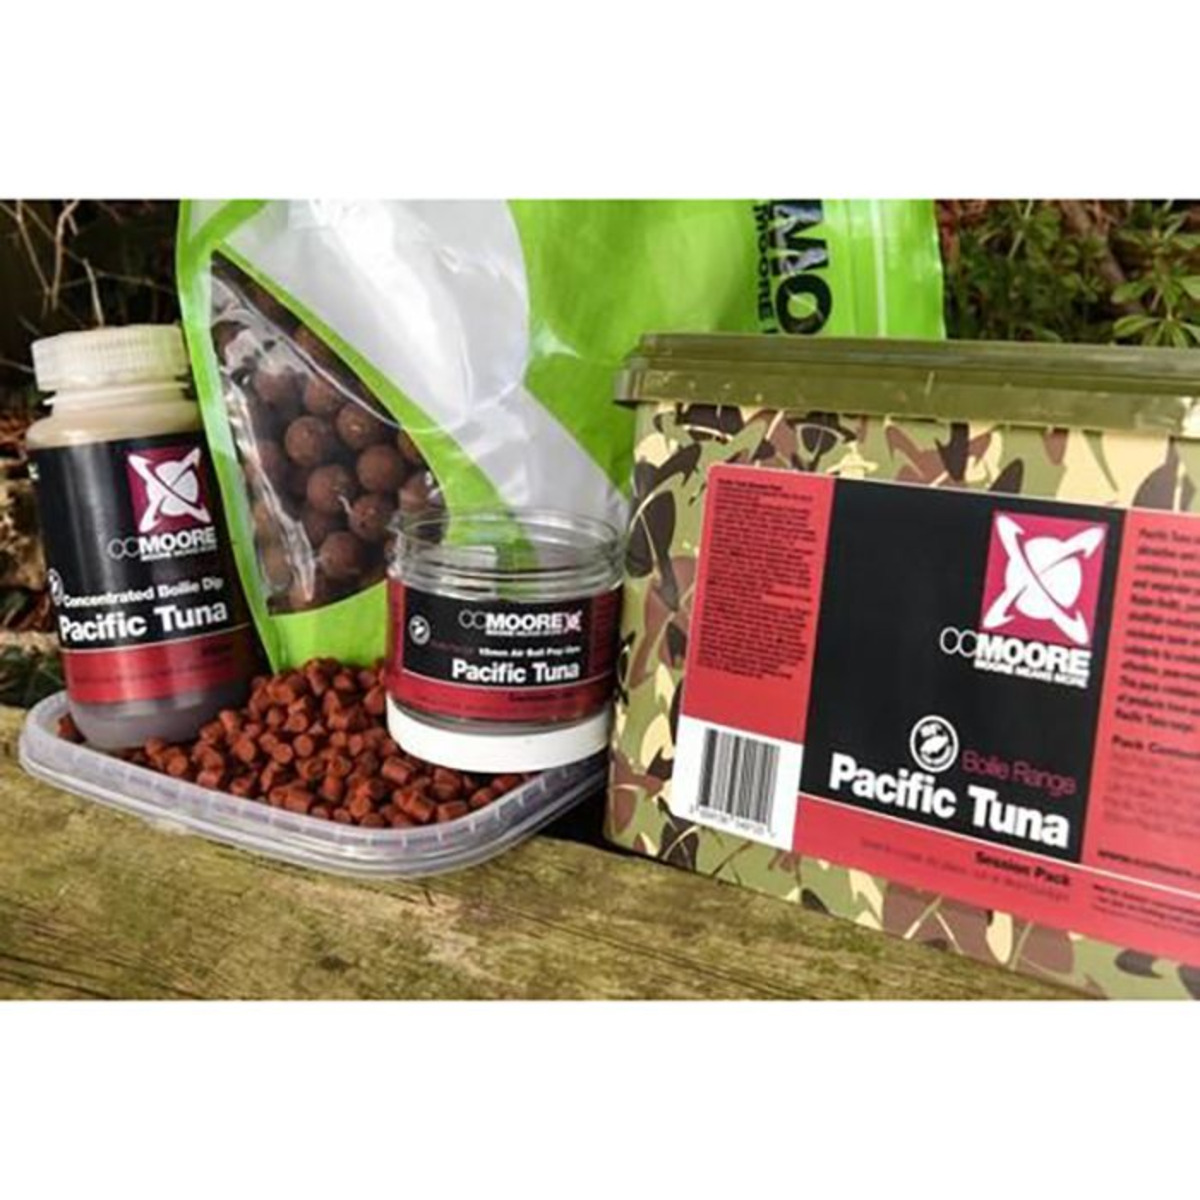 CC Moore Pacific Tuna Session Pack - Pack